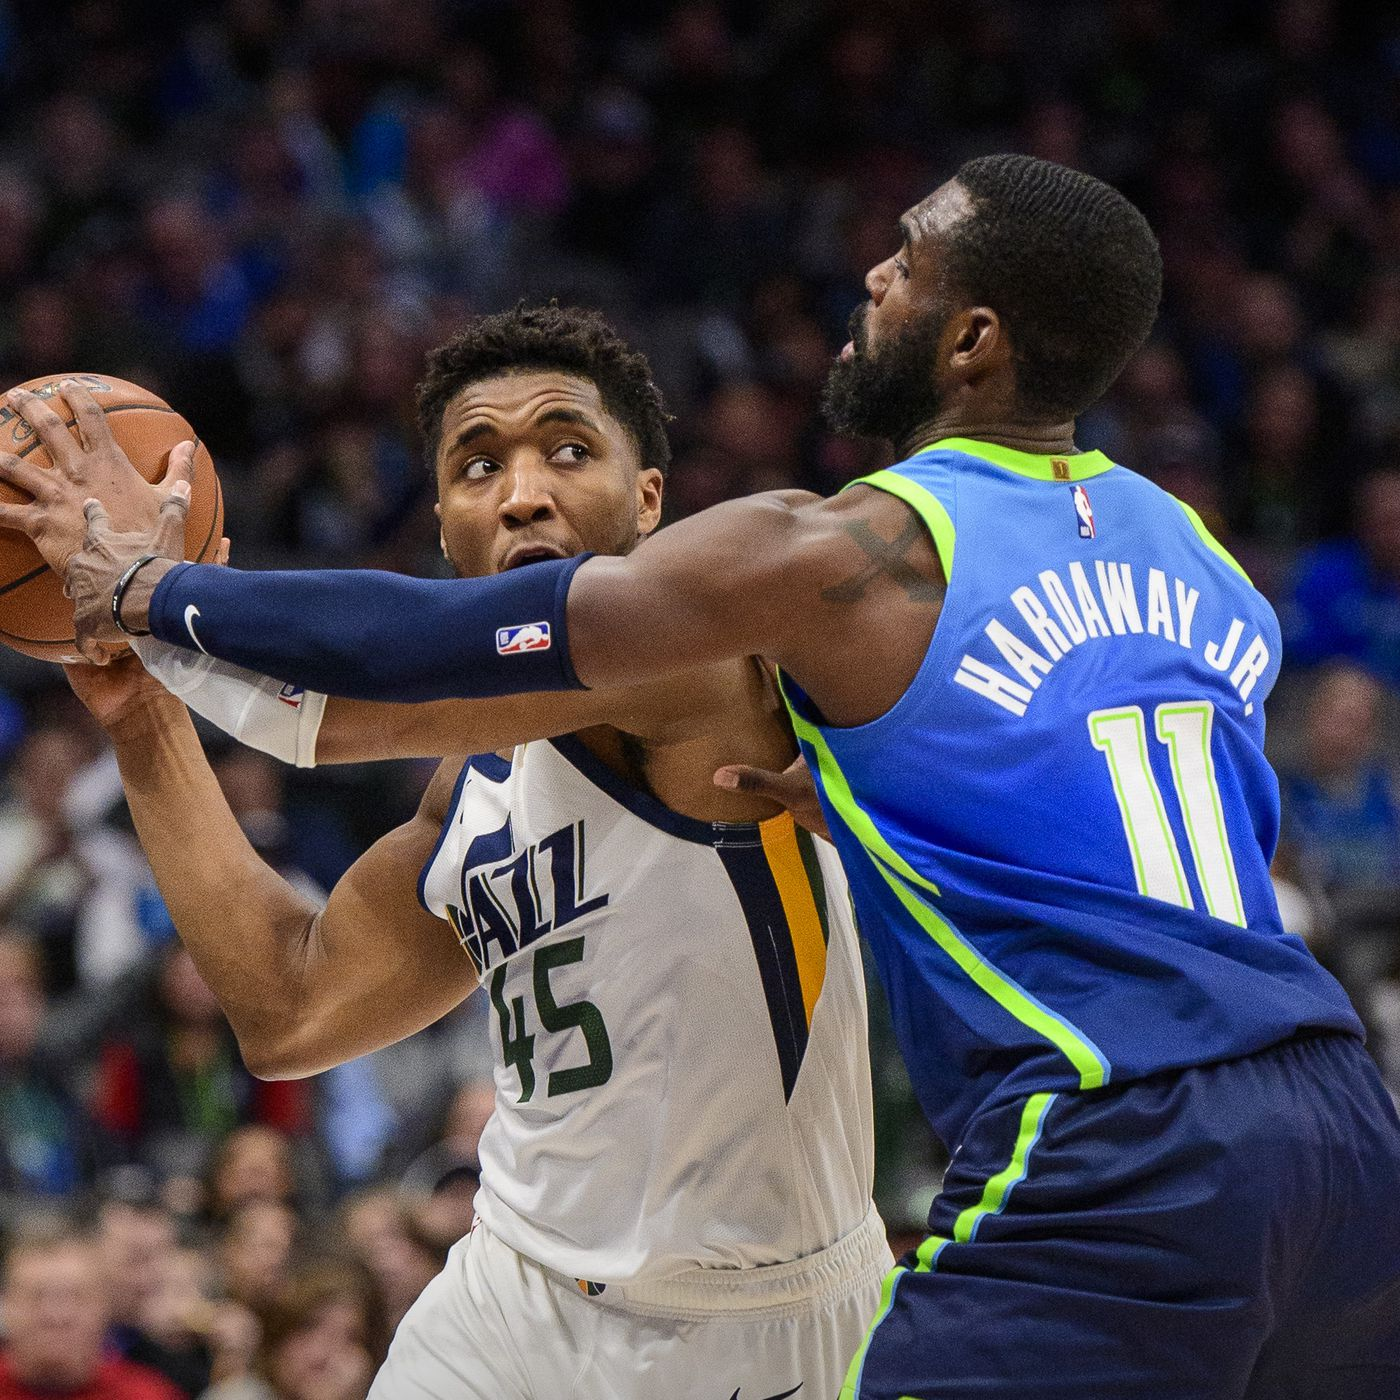 utah jazz face shorthanded dallas mavericks with playoff seeding on the line slc dunk utah jazz face shorthanded dallas